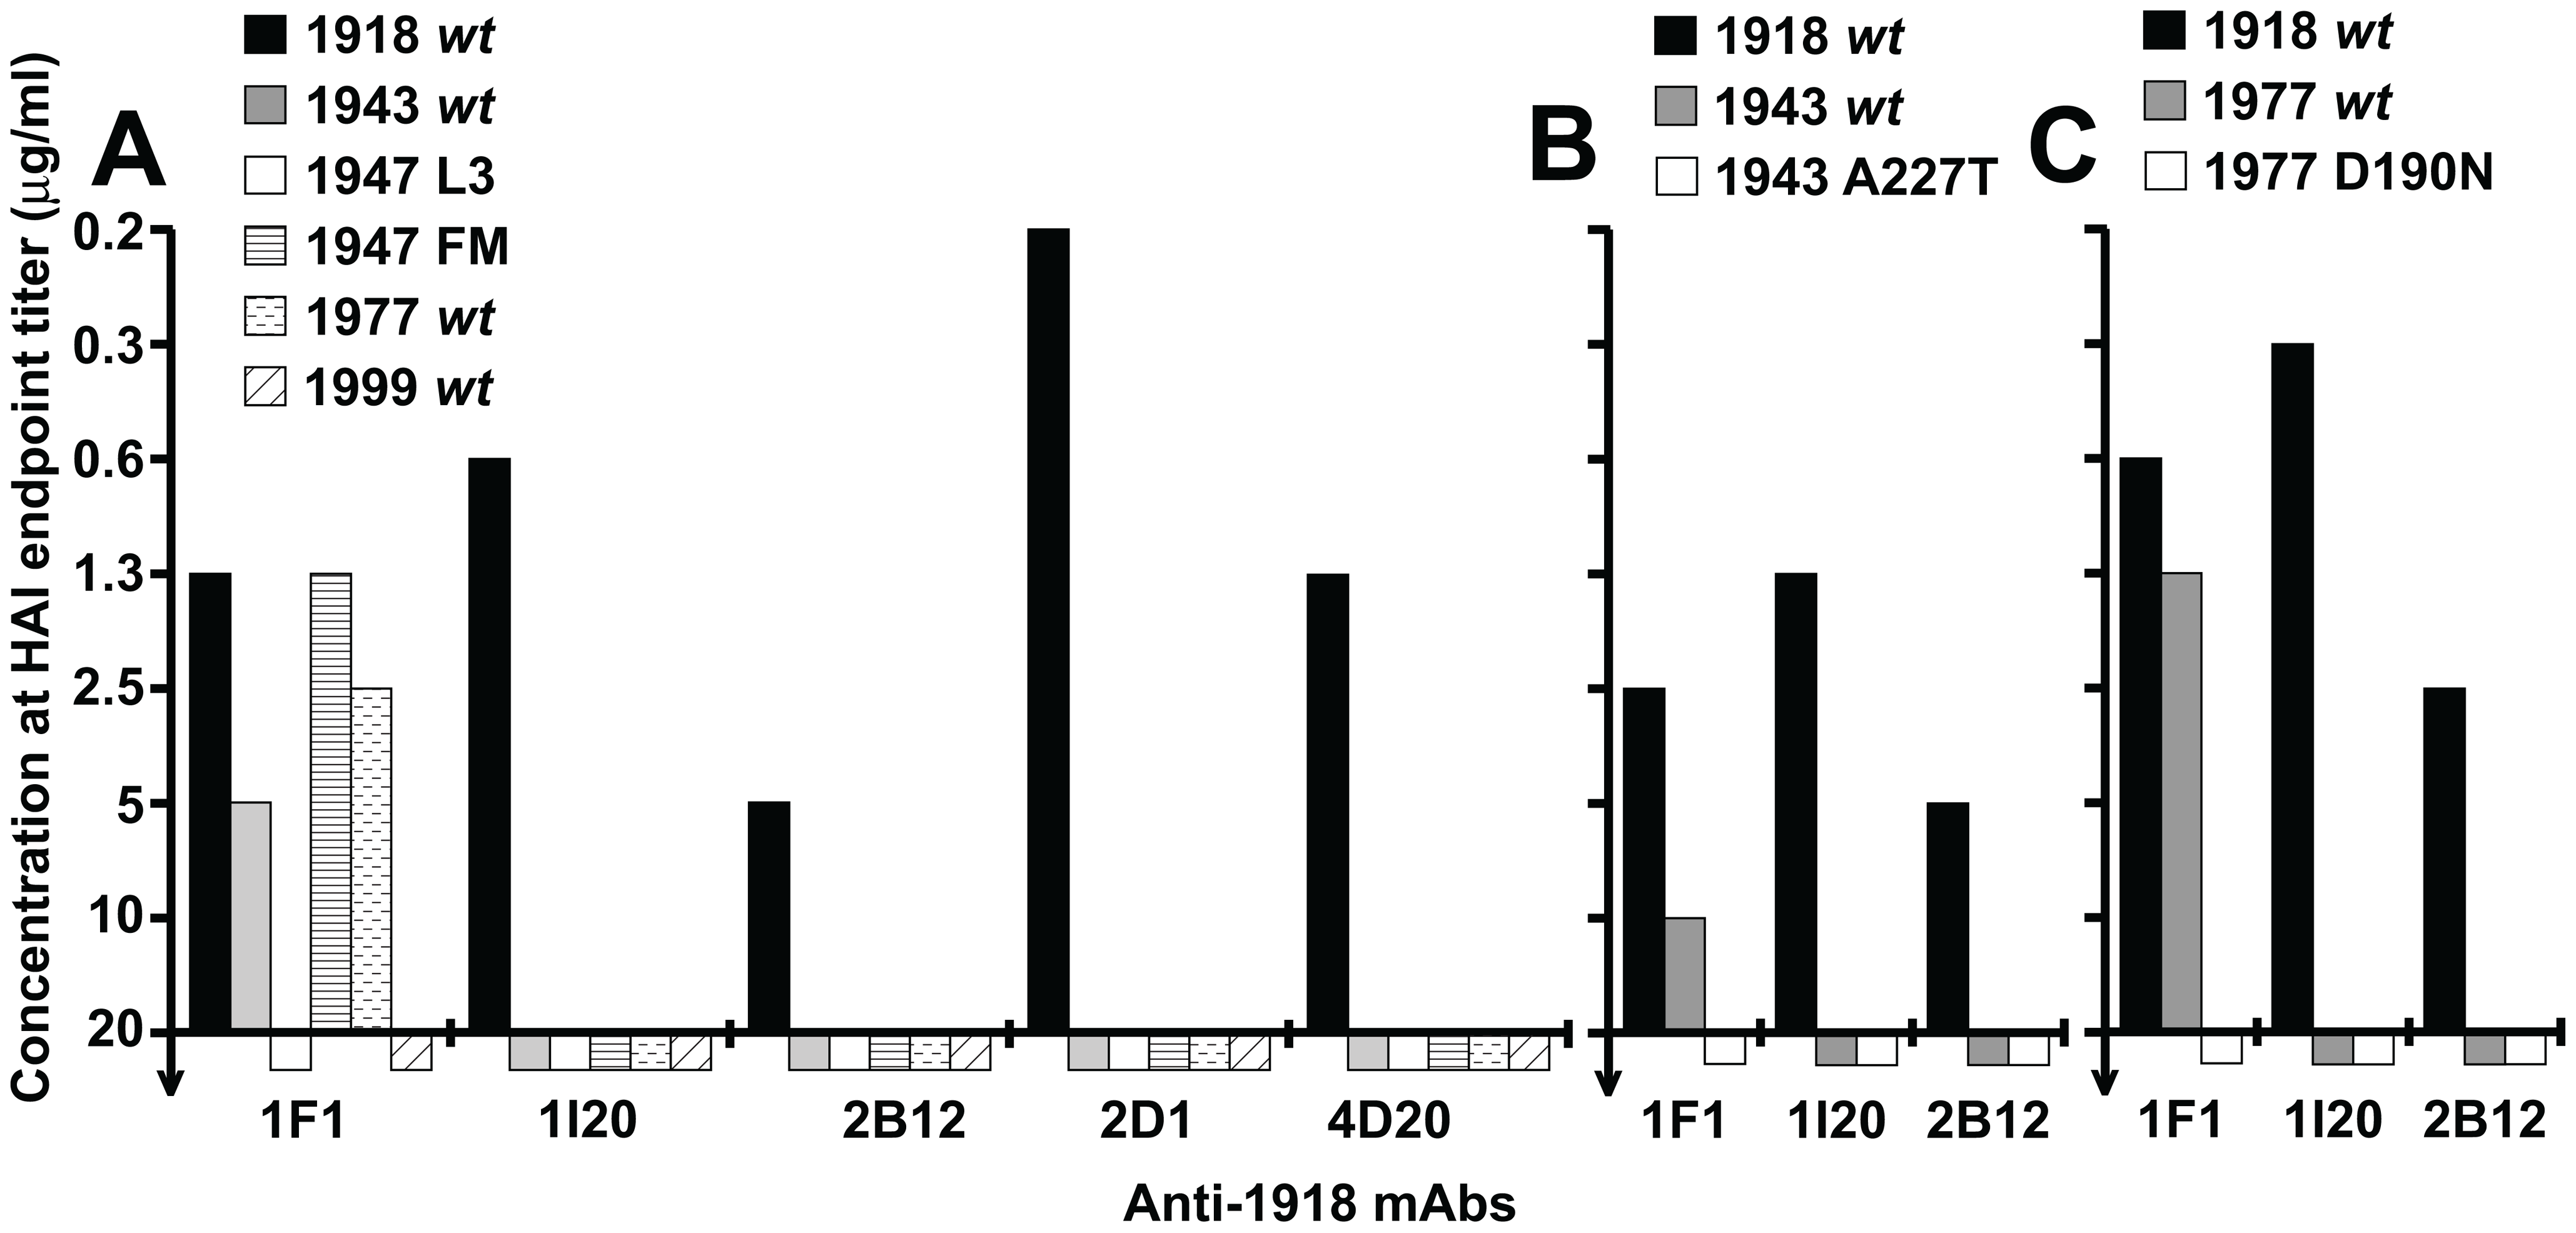 Role of HA residues 190 and 227 in neutralization of 1943 and 1977 H1N1 viruses, respectively.